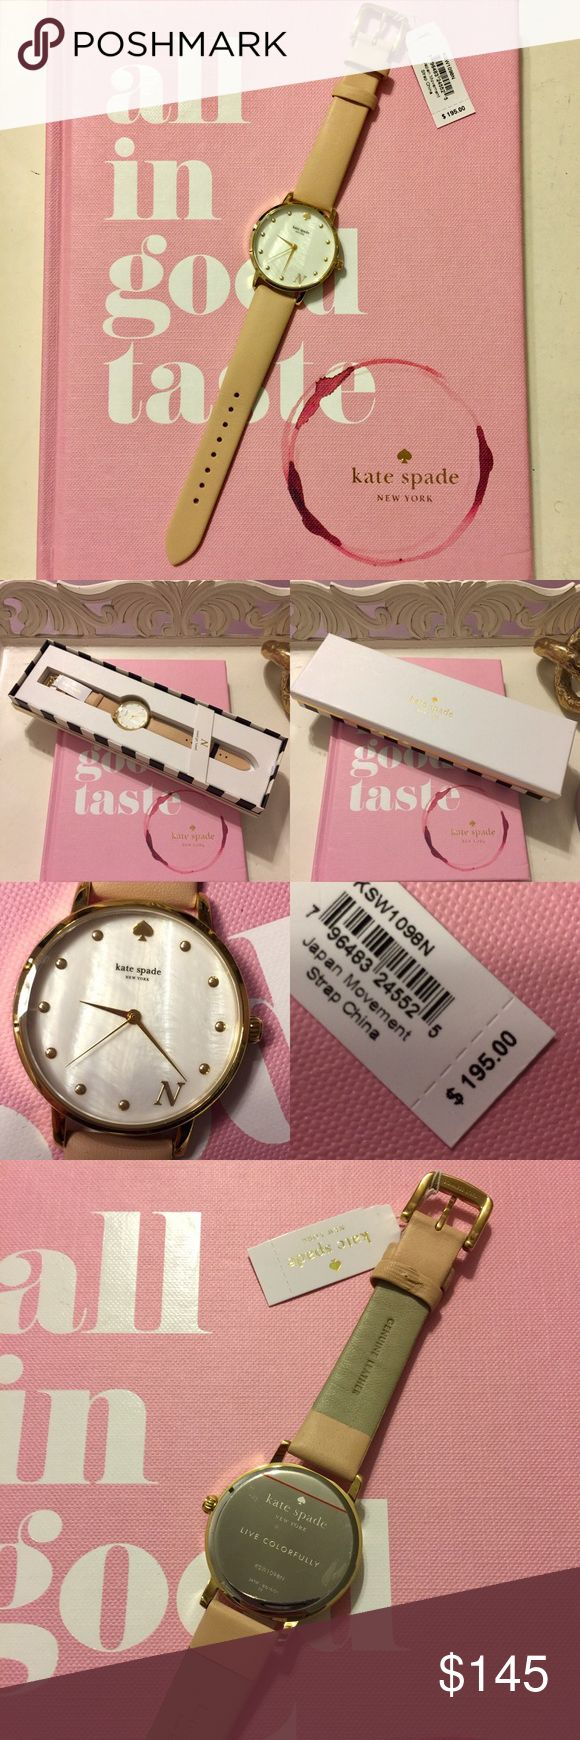 """Kate Spade Monogram Watch NWT Simple and classic 100% authentic Kate spade watch NWT... """"N"""" monogram watch. Genuine leather band. I believe the face is mother of pearl. Comes in original box with care instructions booklet. Negotiable with reasonable offers 👛 {less $ on merc} kate spade Jewelry"""